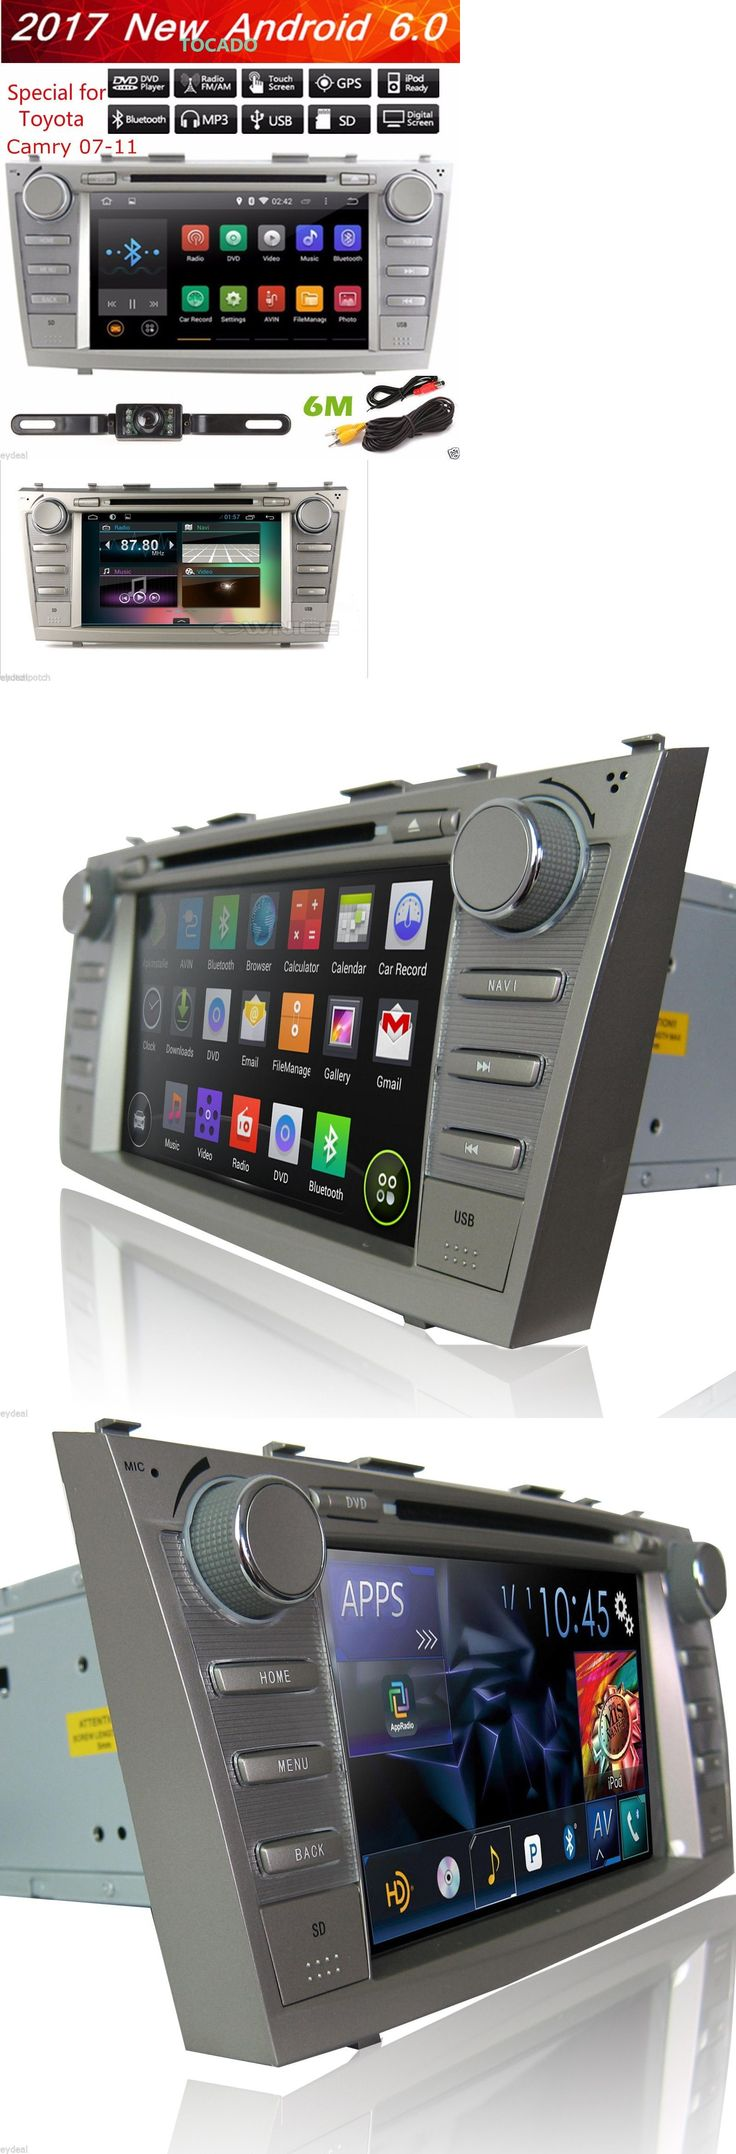 Video In-Dash Units w GPS: 8 Toyota Camry 2007-2011 Gps Navigation Android 6.0 Car Radio Stereo Dvd Player -> BUY IT NOW ONLY: $228.97 on eBay!